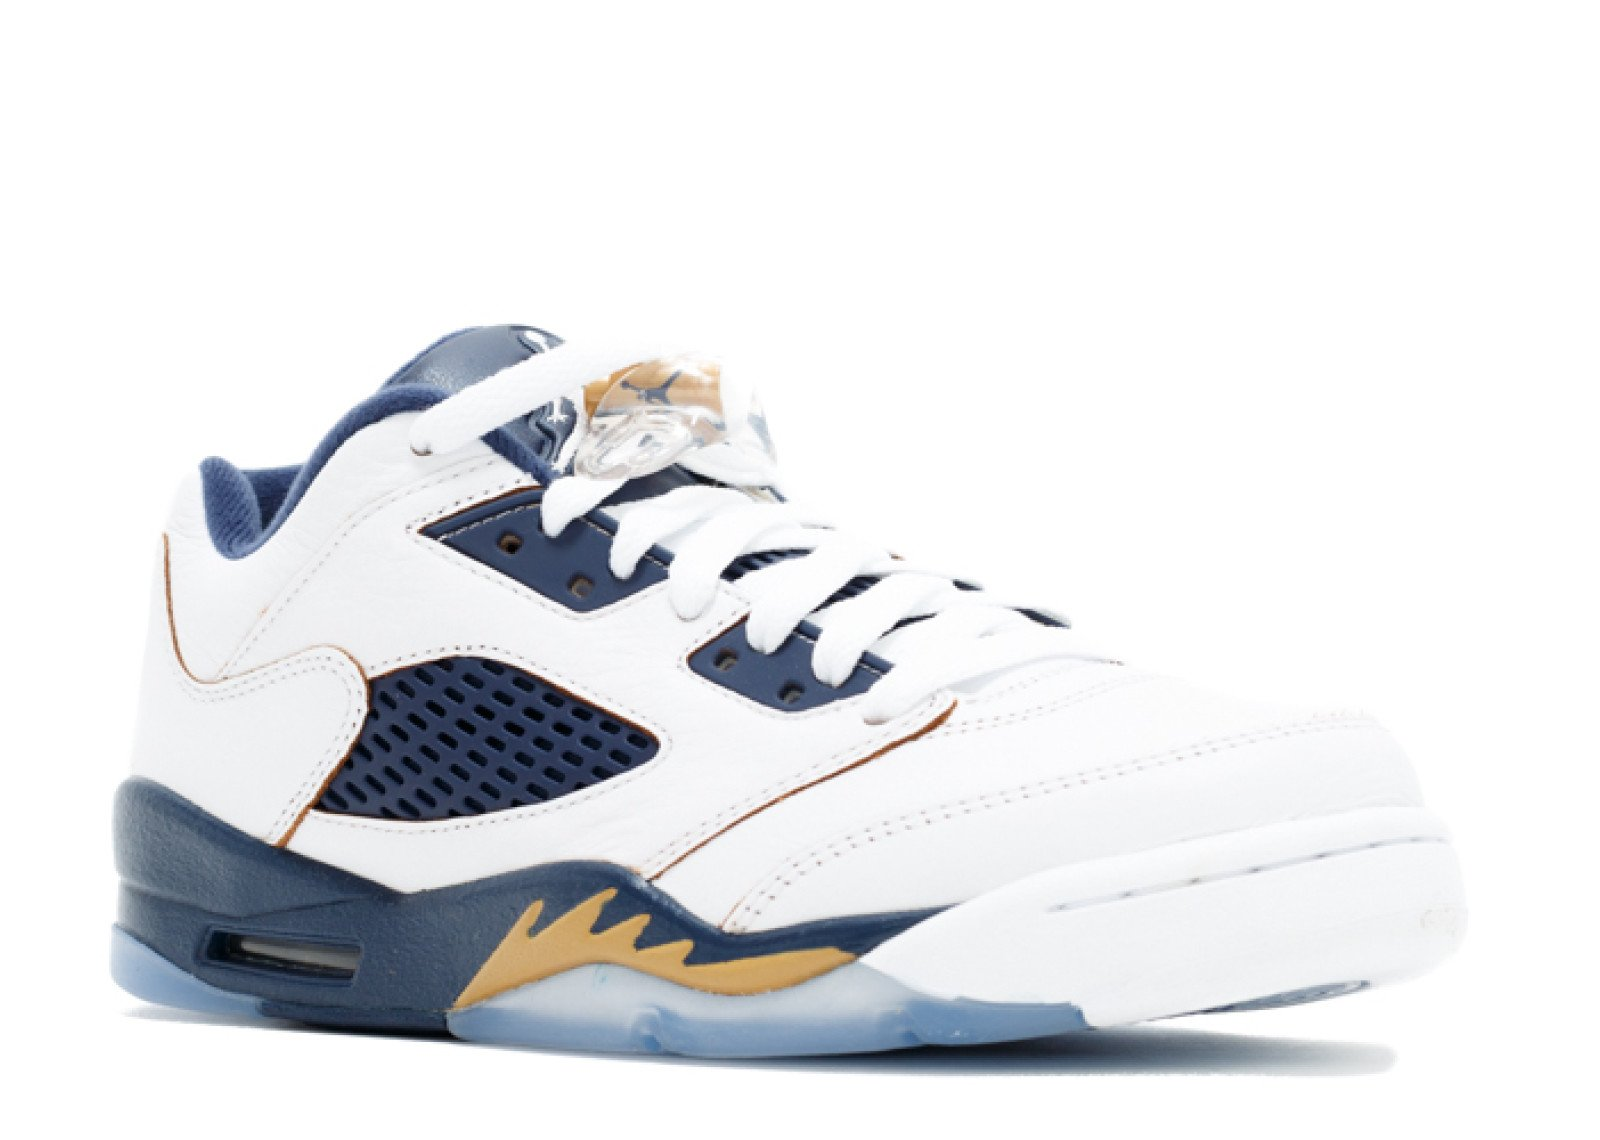 "ee0b6955bb5e9a Galleon - Jordan Air 5 Retro Low (GS) ""Dunk From Above"" Big Kid s Shoes  White Metallic Gold Star-Midnight Navy 314338-135 (6.5 D(M) US)"